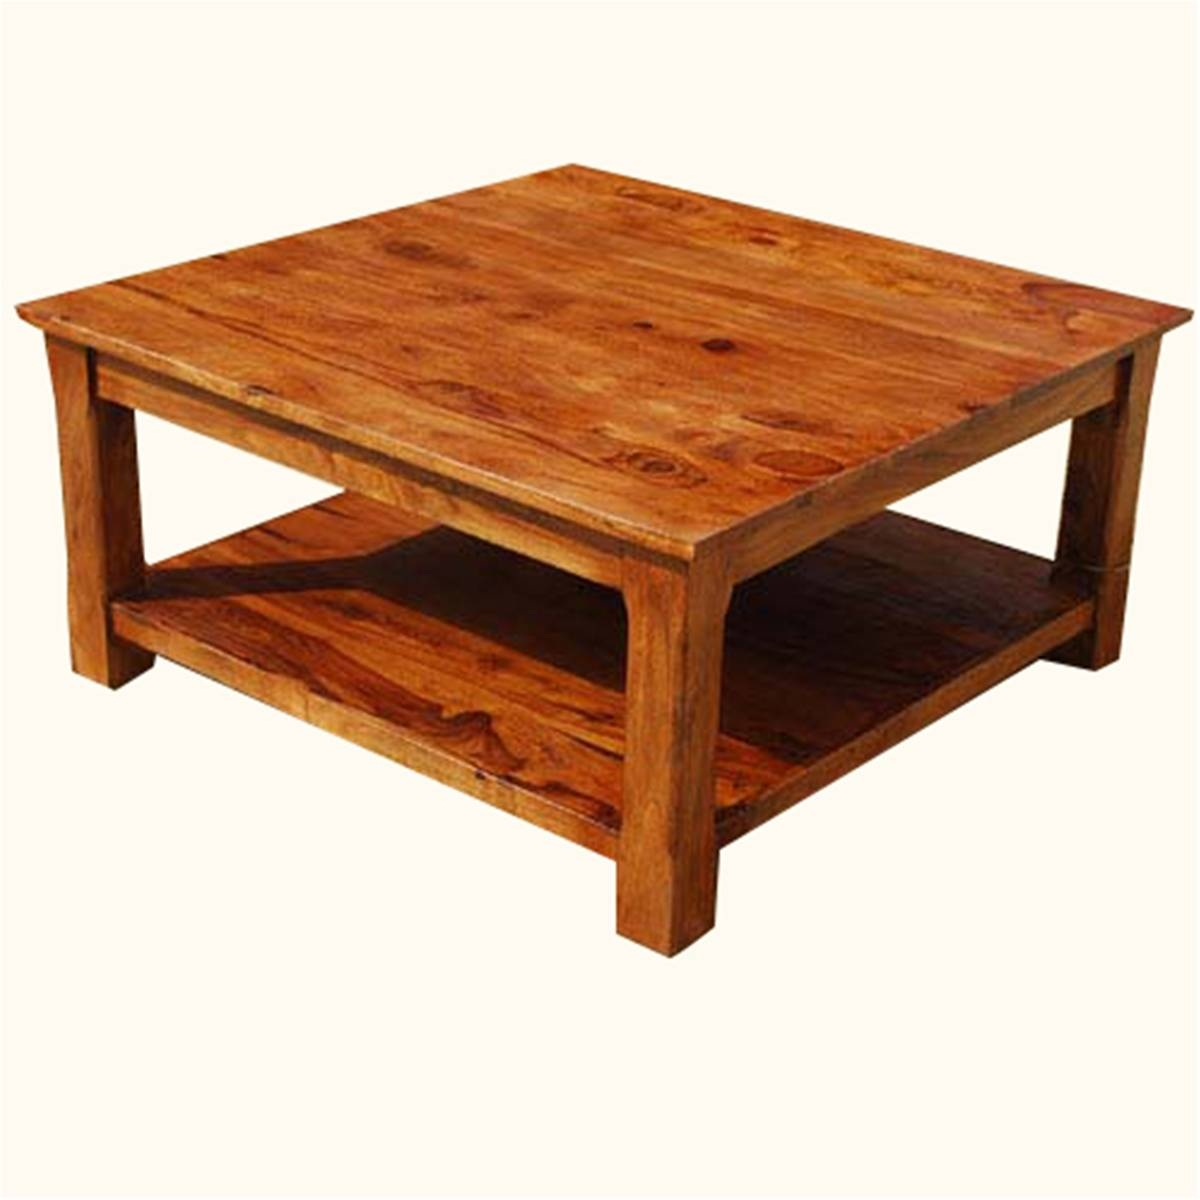 Coffee Tables Ideas: Modern Large Wooden Coffee Table Large Round intended for Large Wood Coffee Tables (Image 3 of 15)